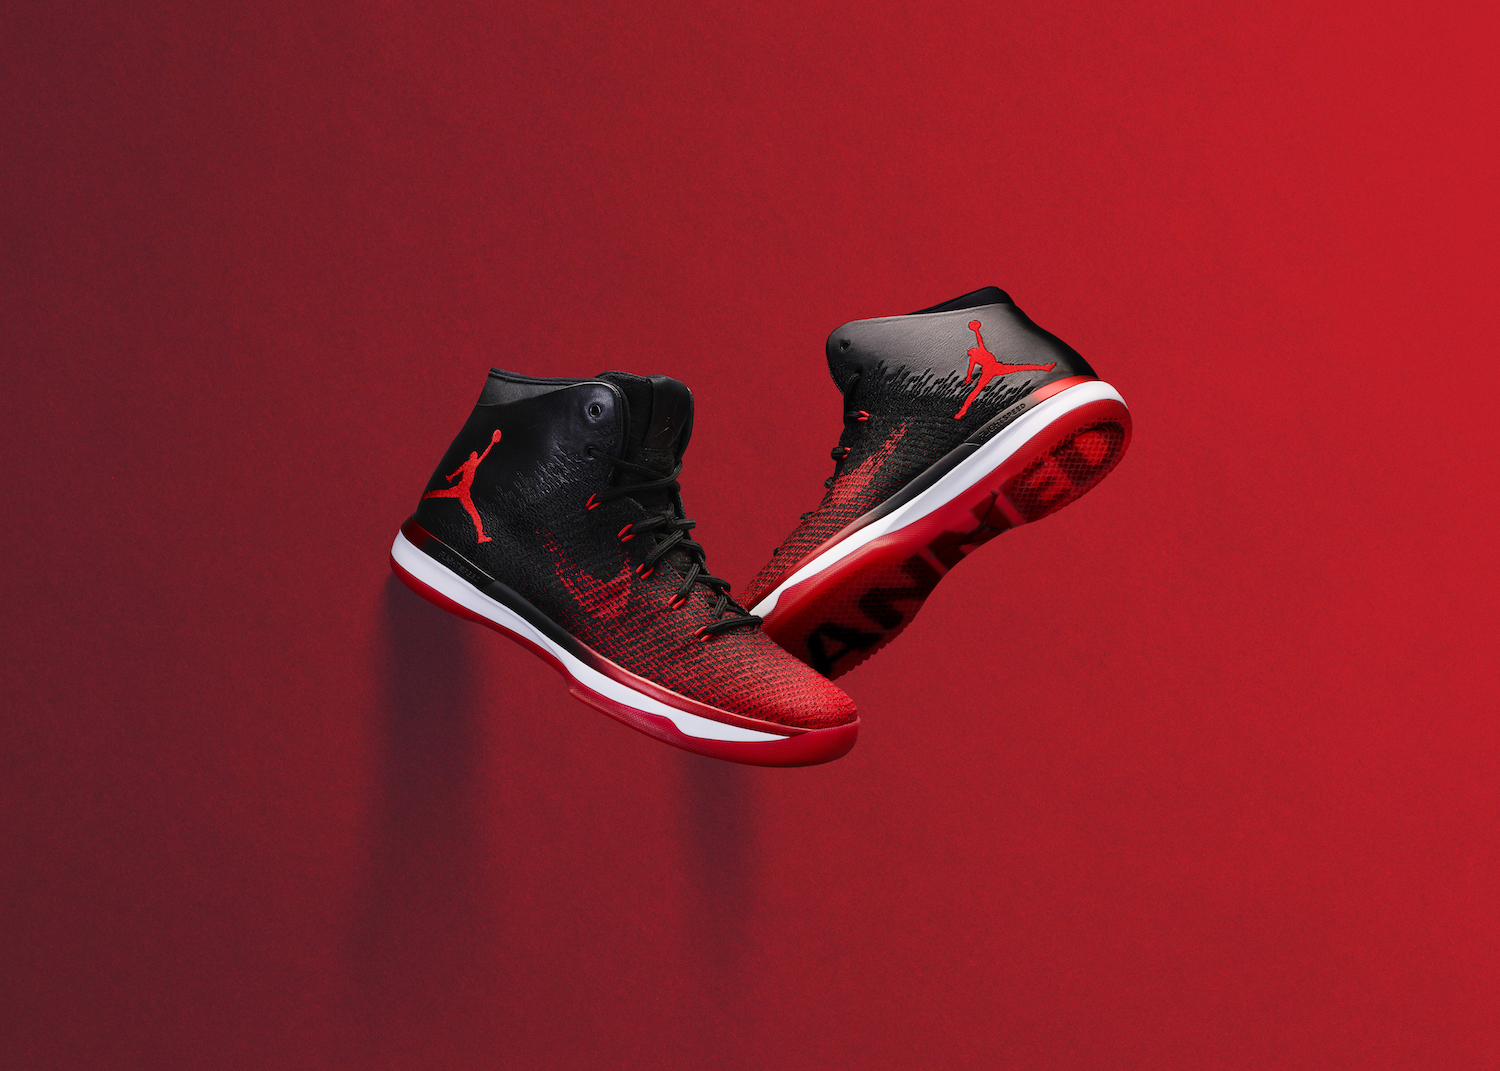 40032a0a993a The Air Jordan XXXI Has Been Unveiled - WearTesters